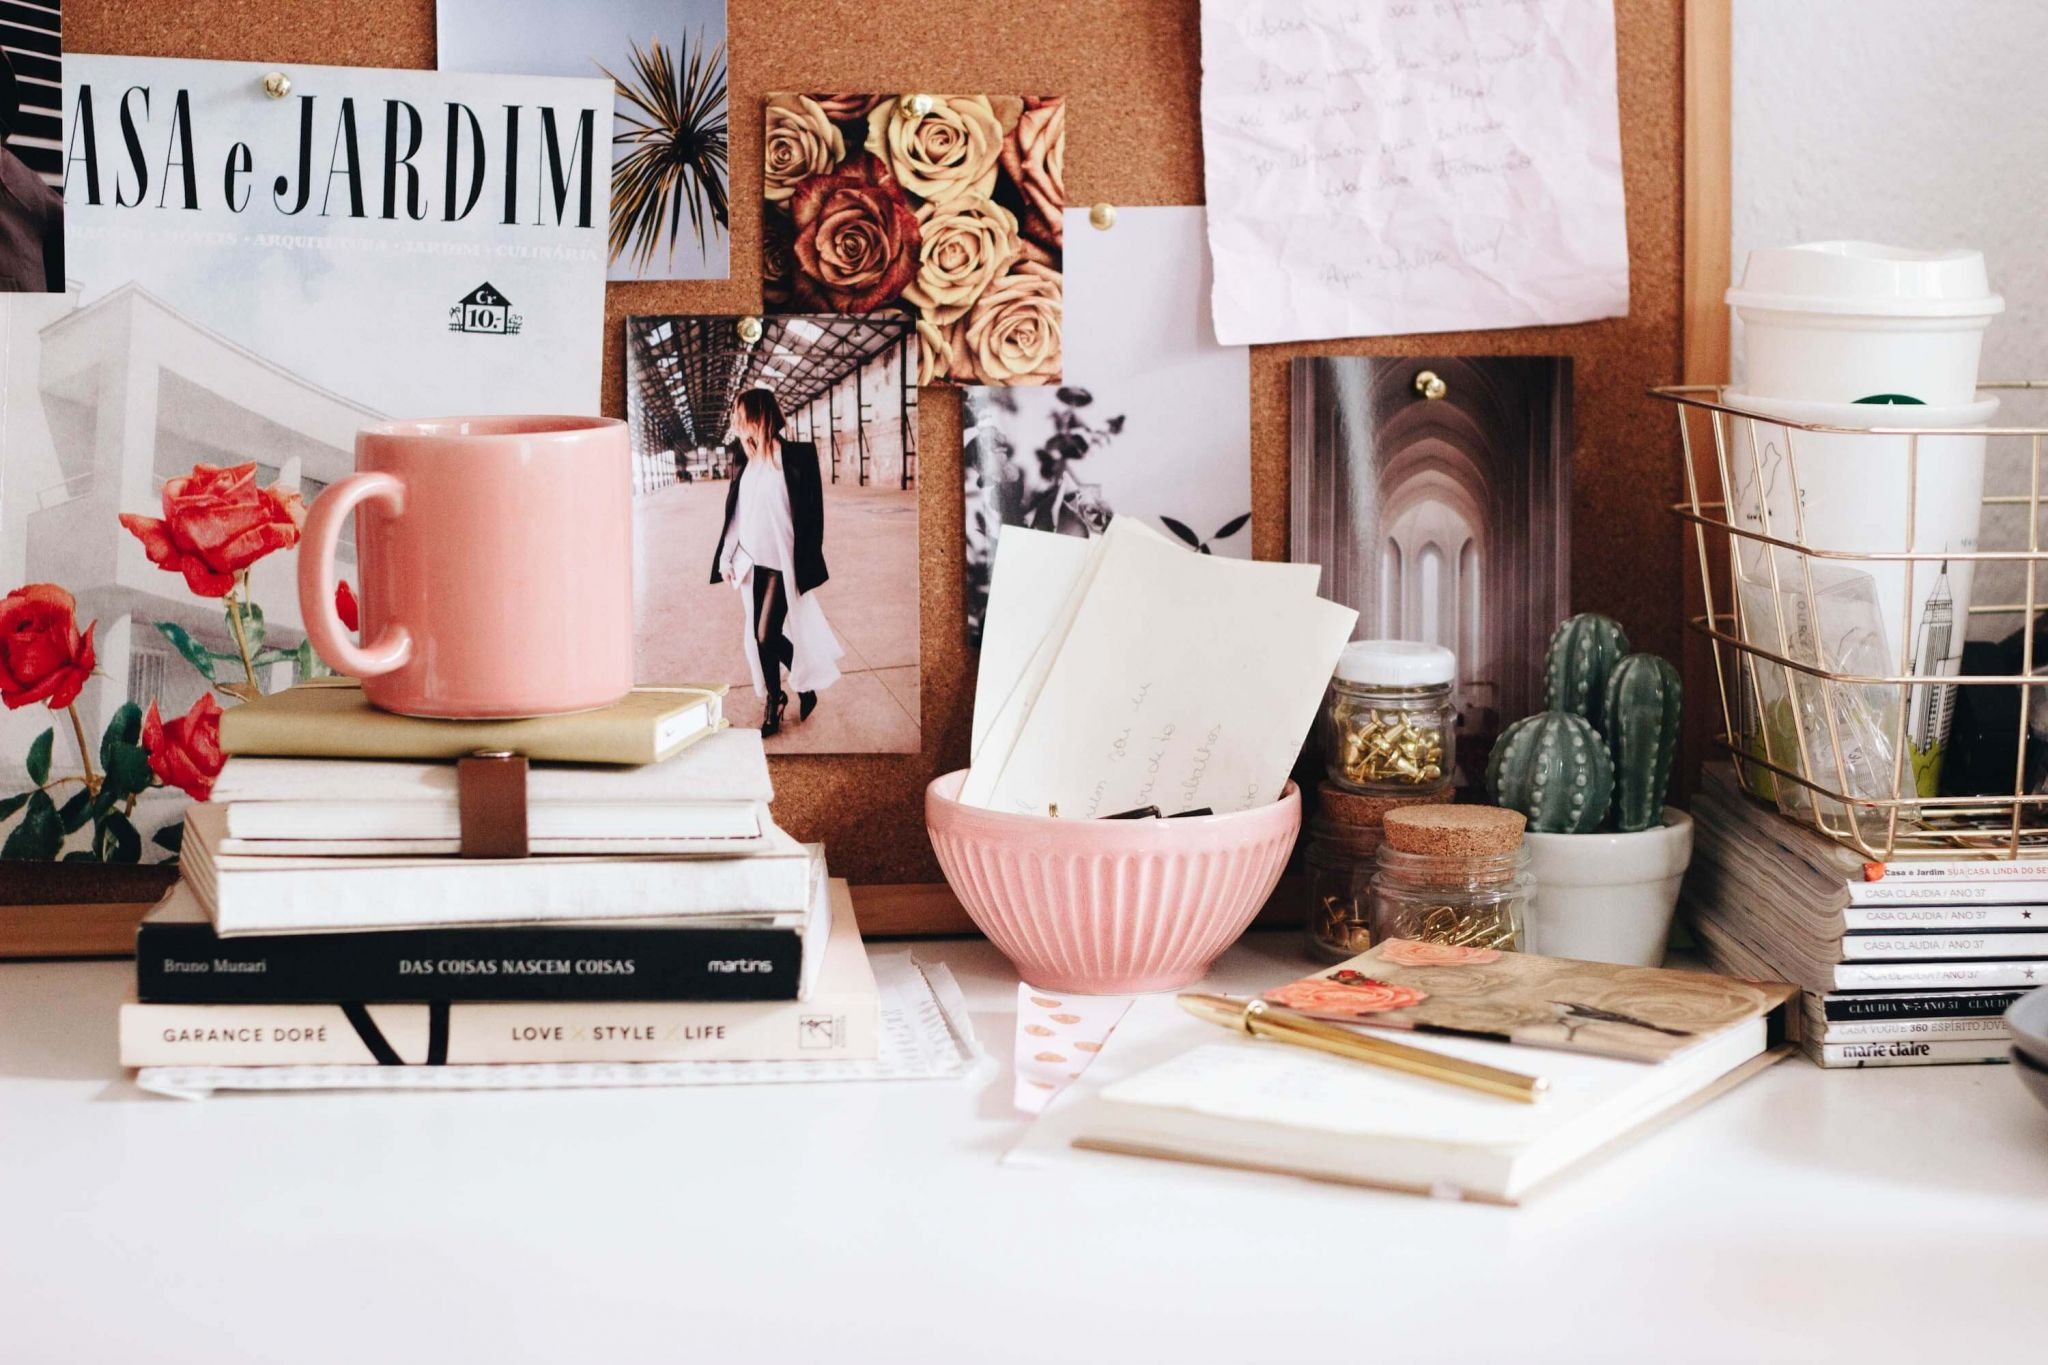 free and bargain books - a desk scene with pink mug, pink bowl and a selection of books by a notice board